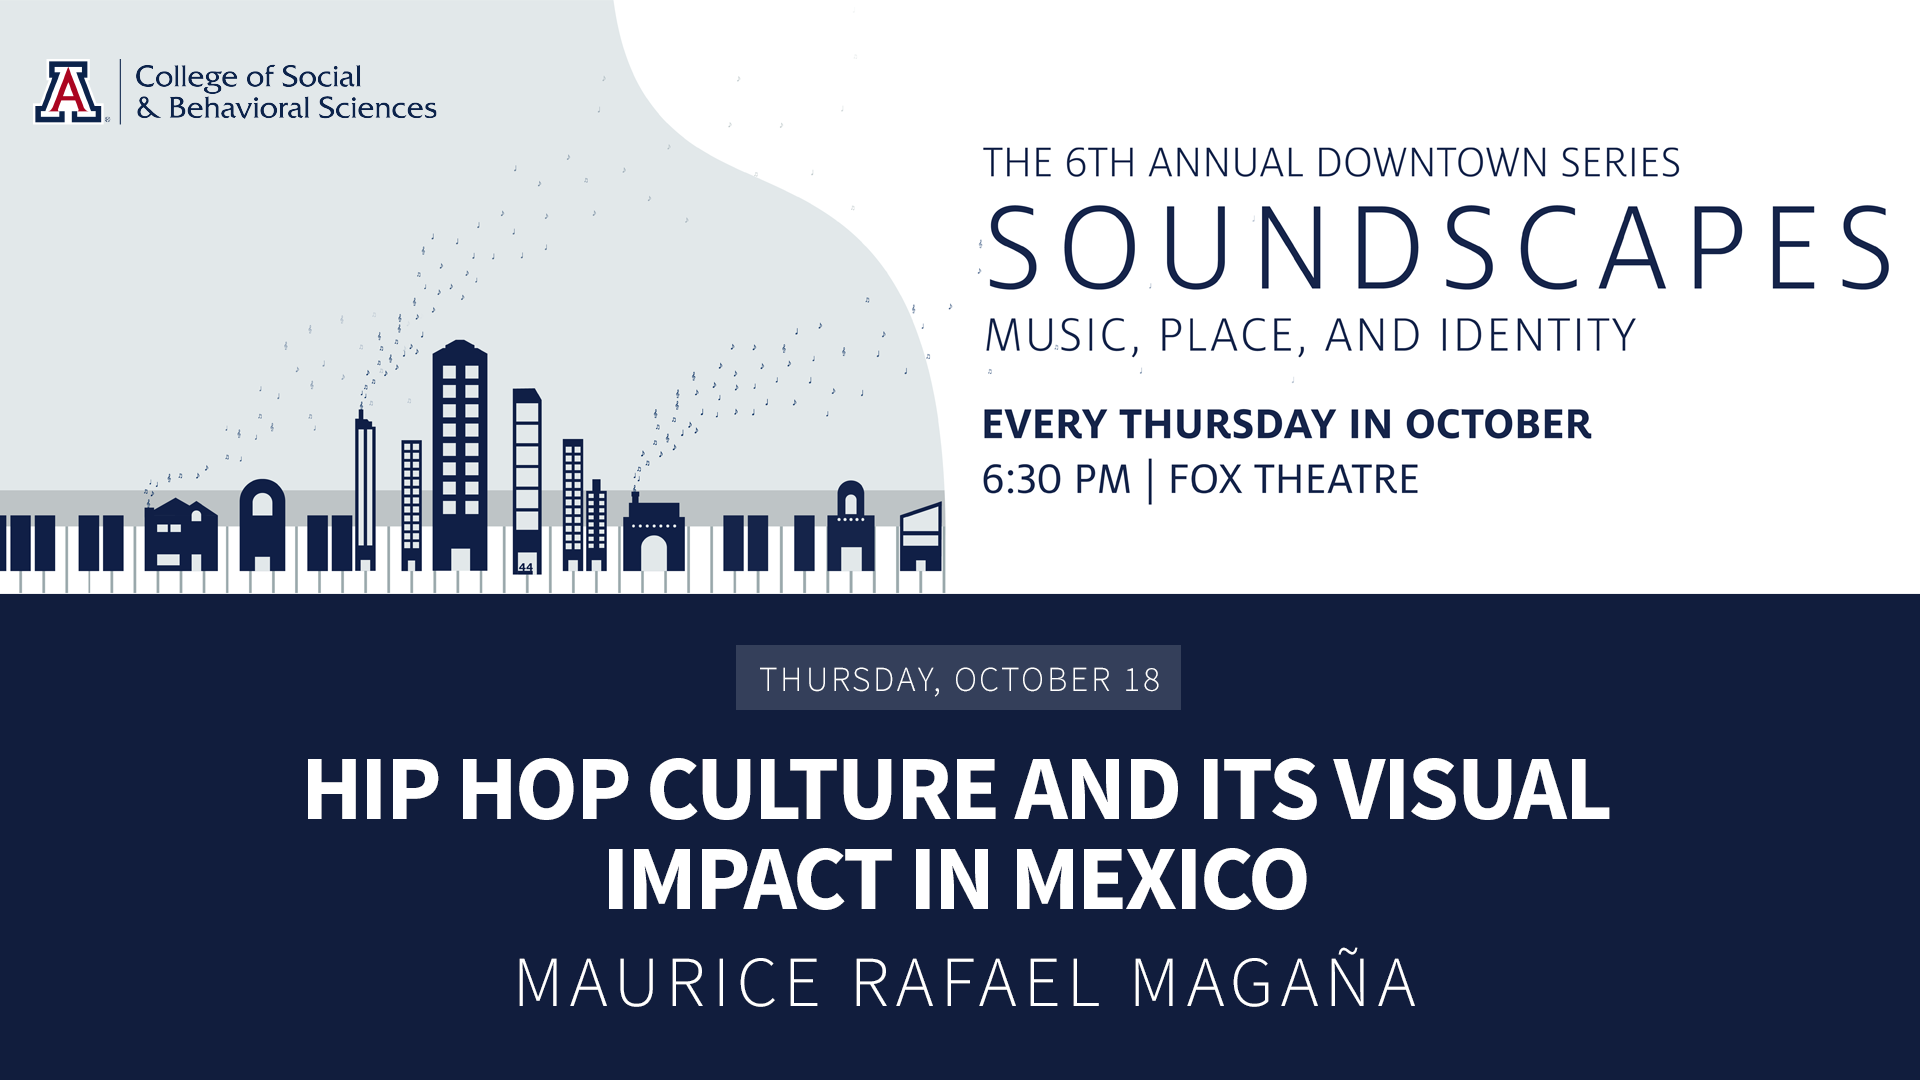 Hip Hop Culture and its Visual Impact in Mexico